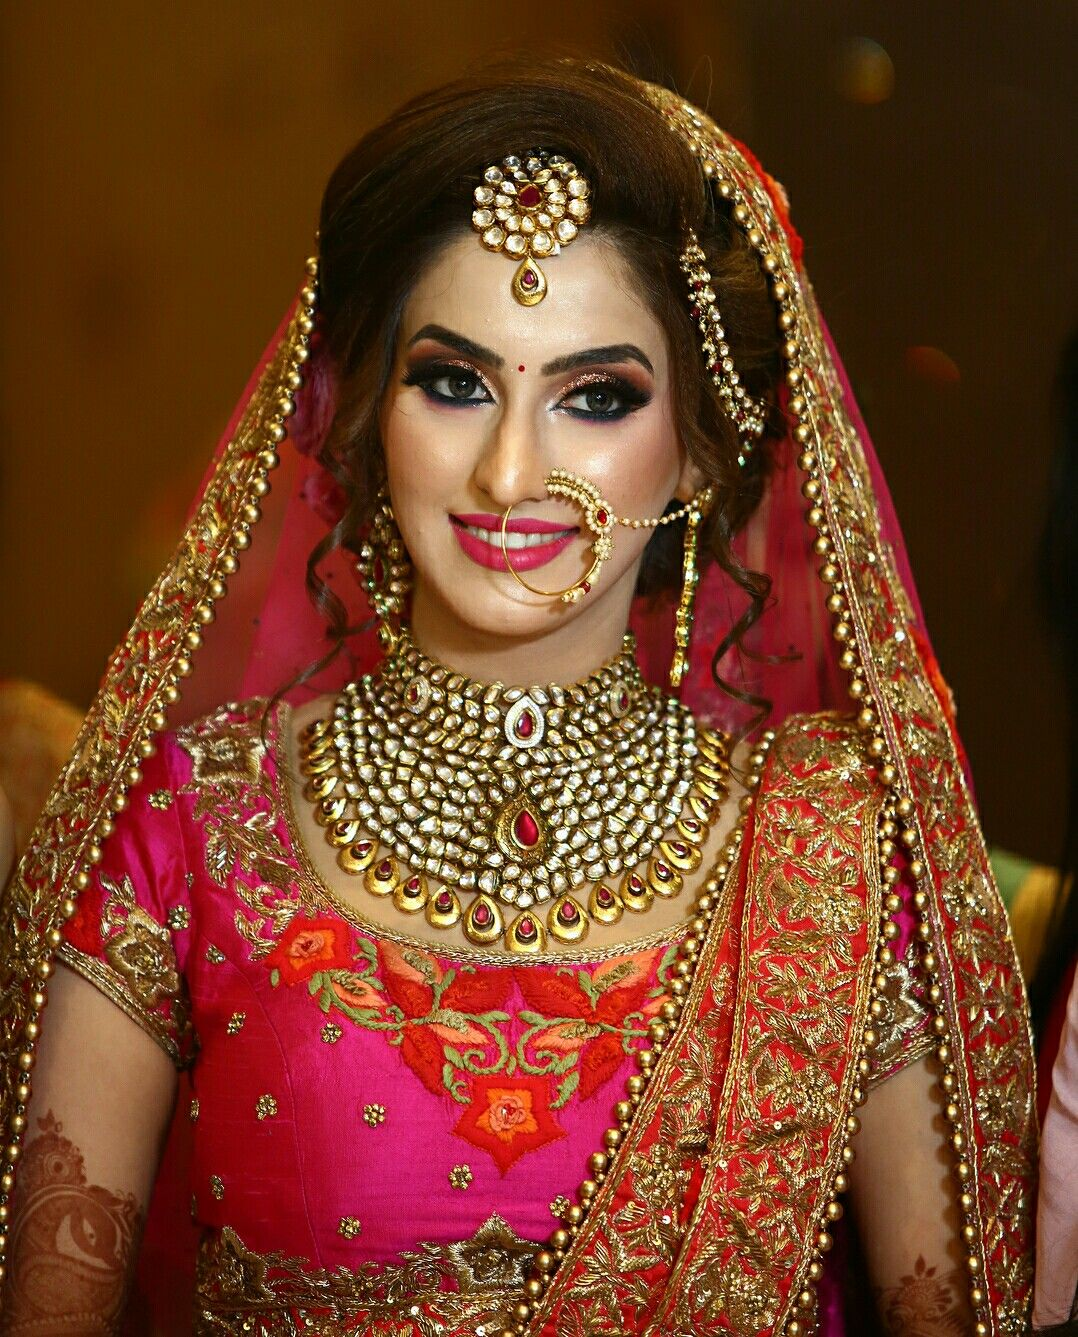 pinterest: @shikachand indian bride, beautiful lhengas